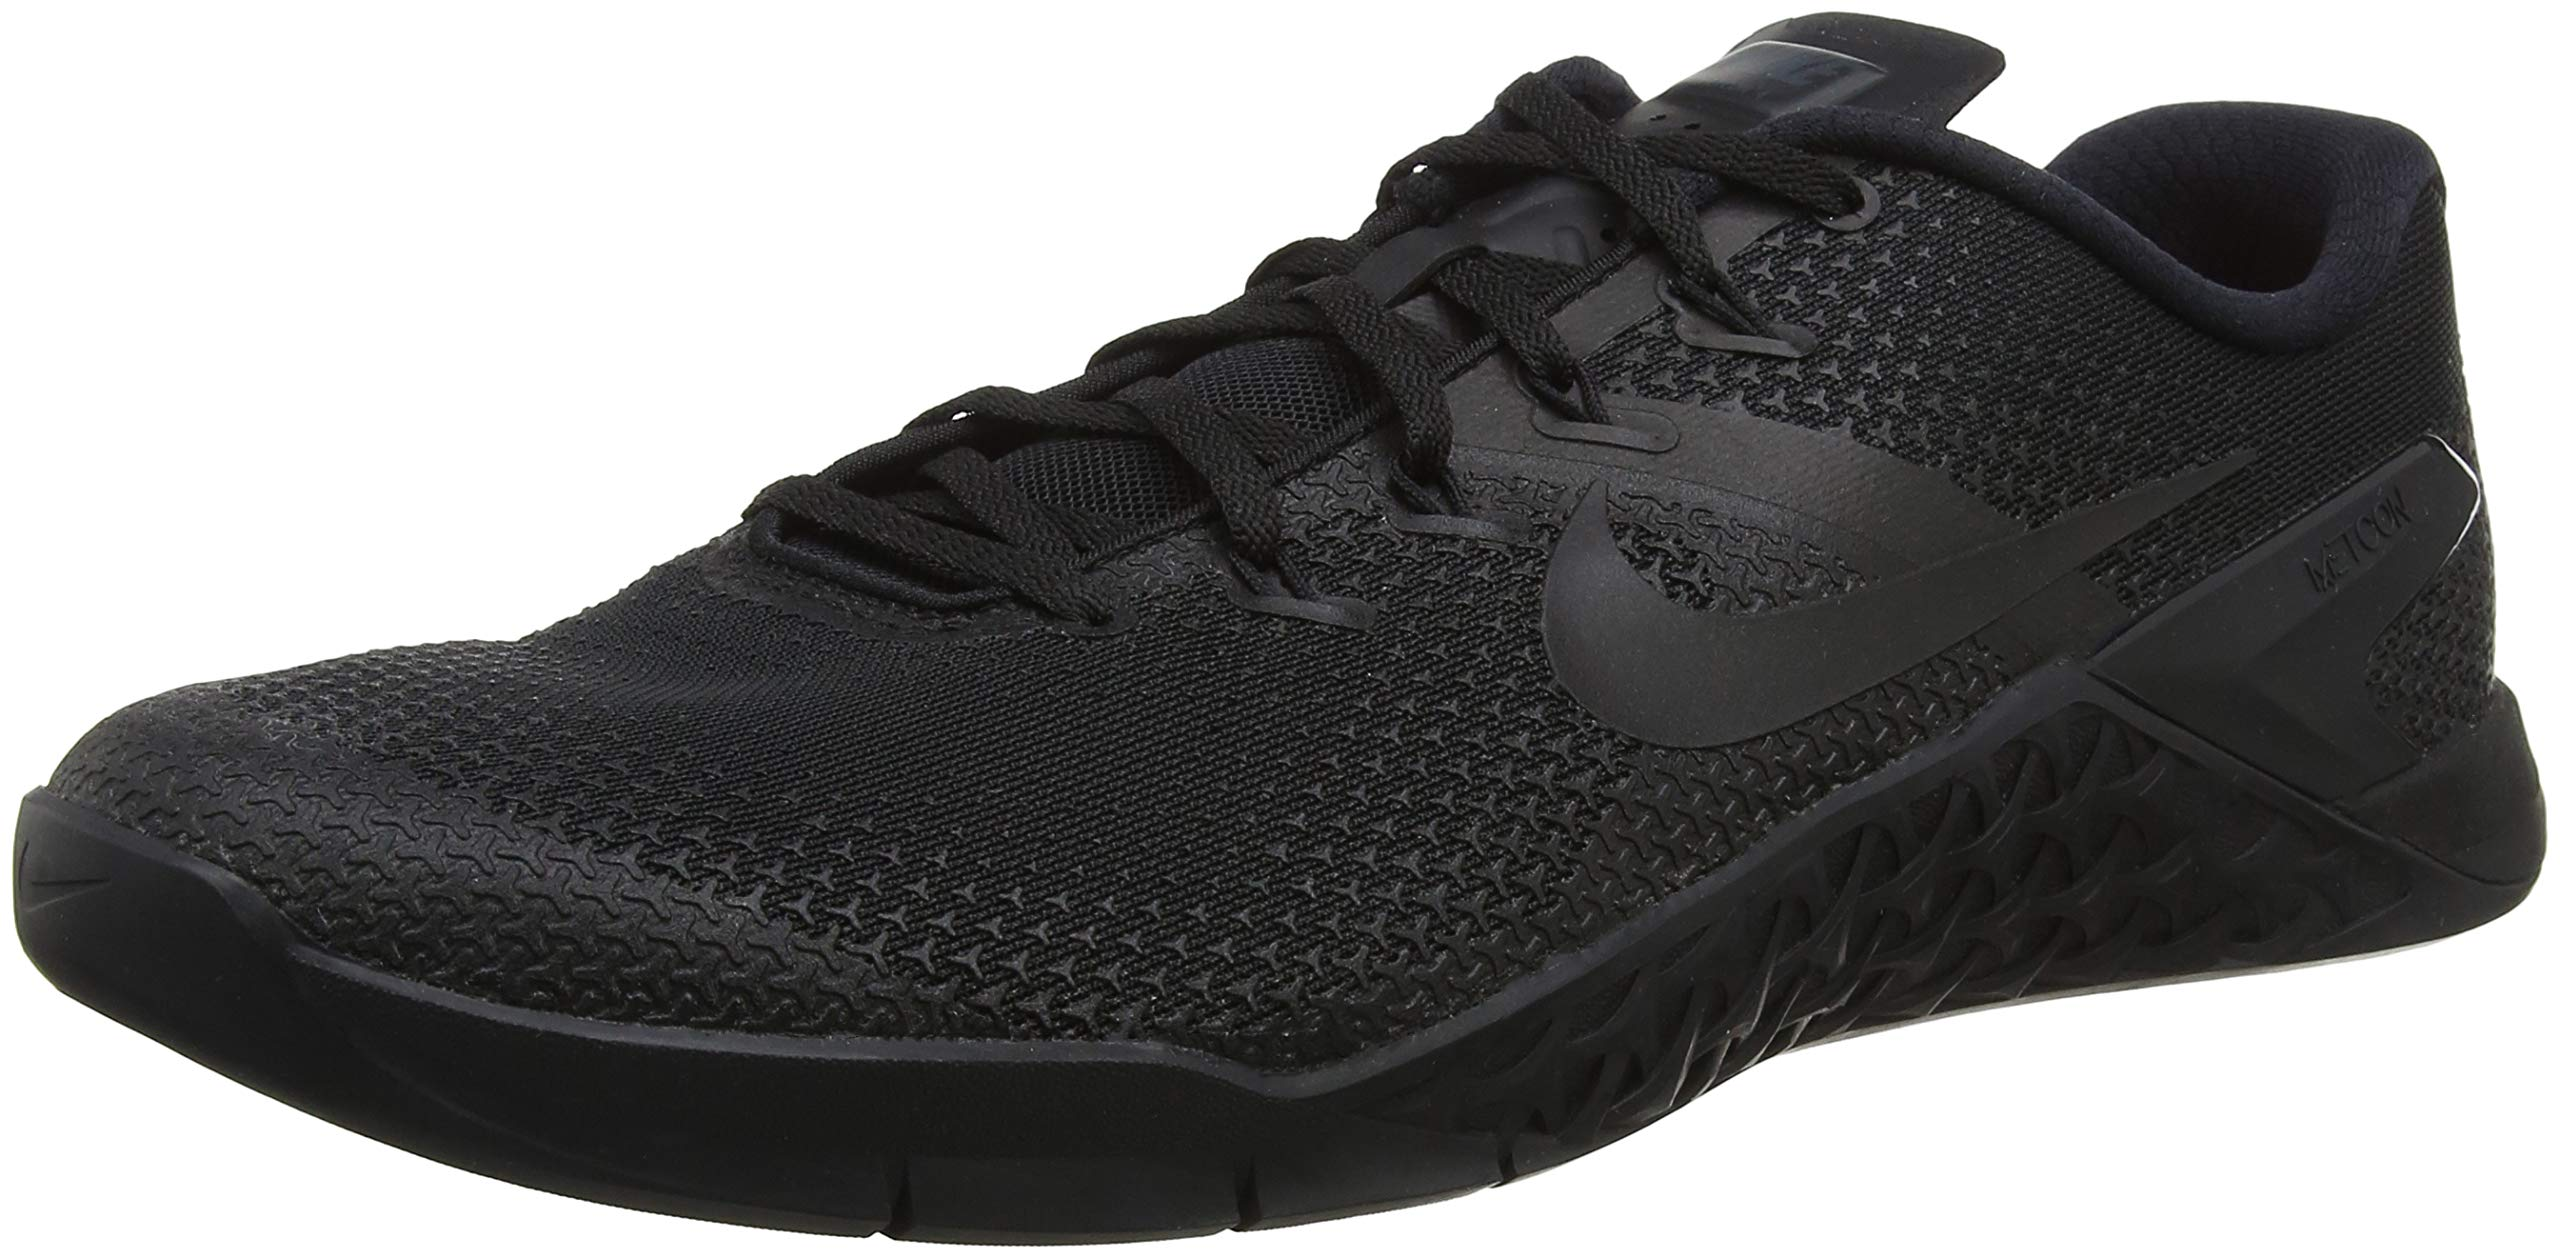 Nike Men's Metcon 4 Training Shoe Black/Black-Black-Hyper Crimson 7.0 by Nike (Image #1)